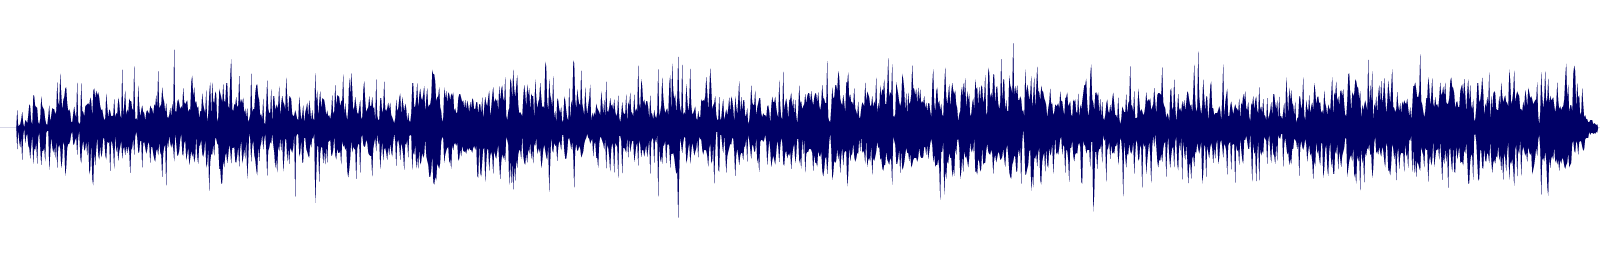 waveform of track #92942